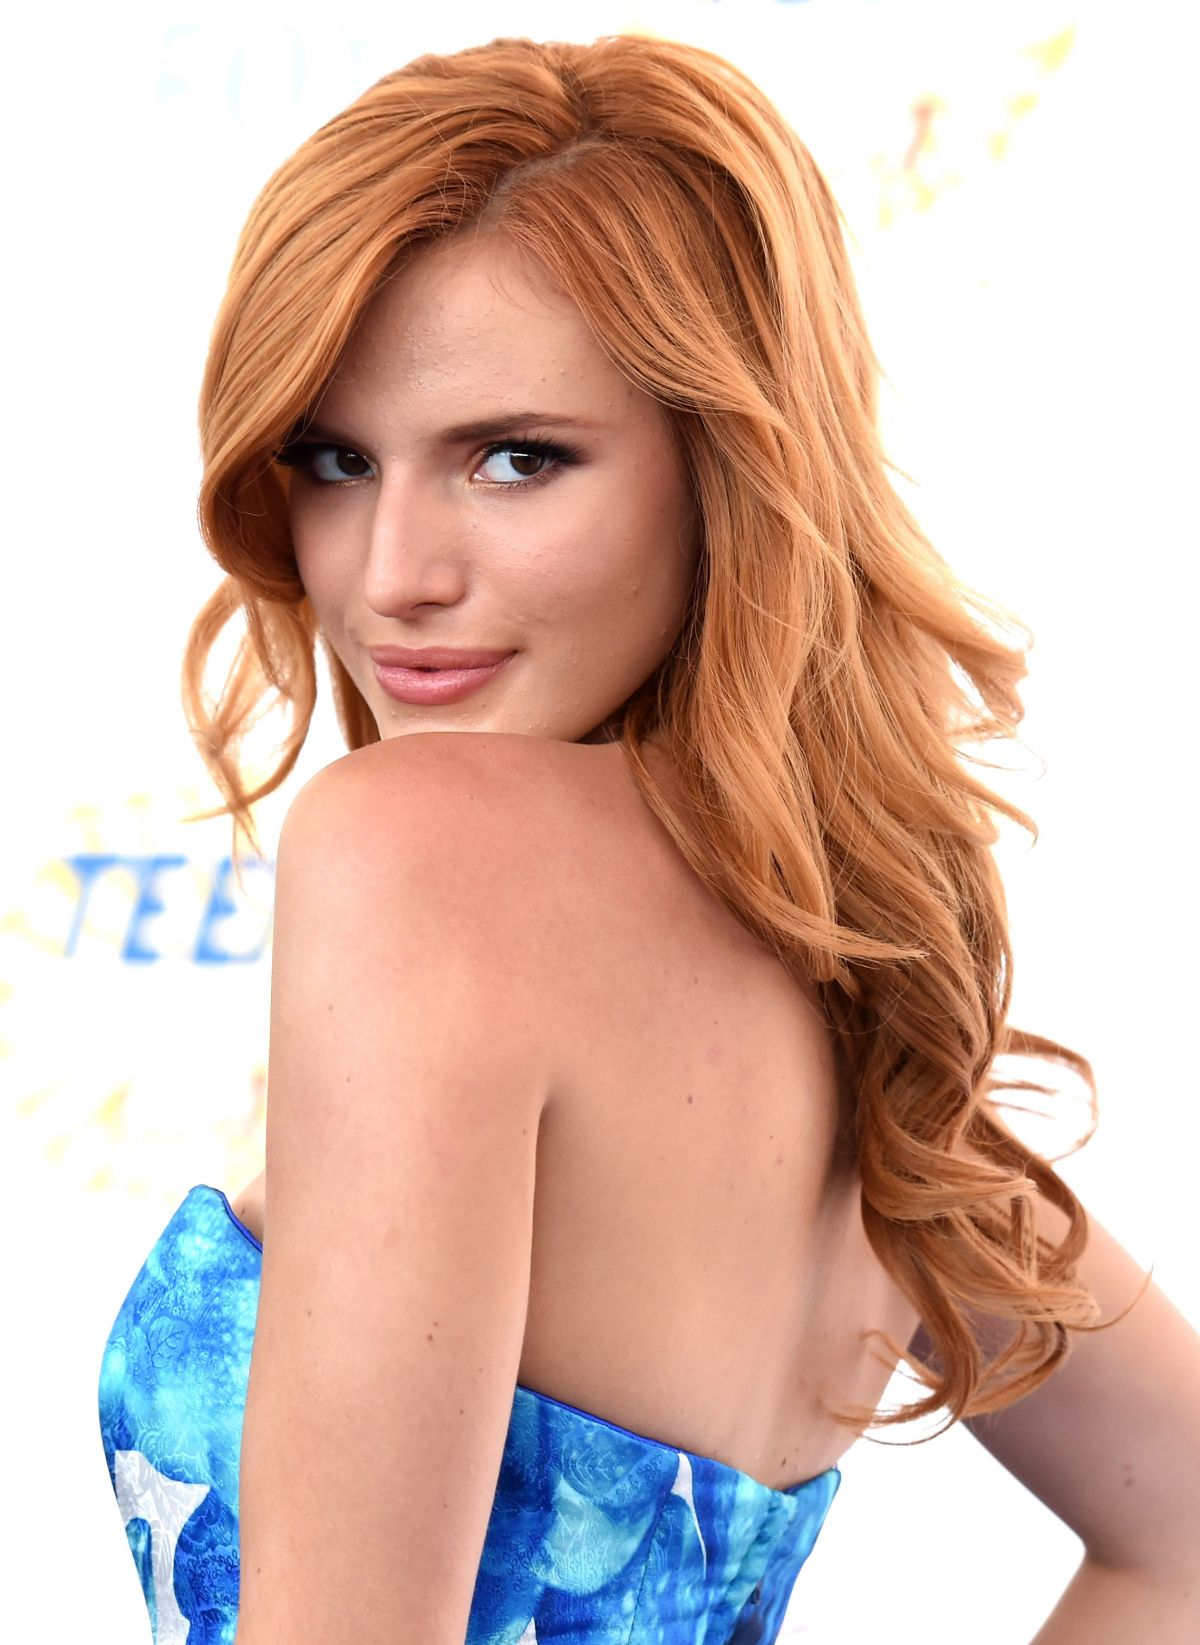 BELLA THORNE at Teen Choice Awards 2014 in Los Angeles